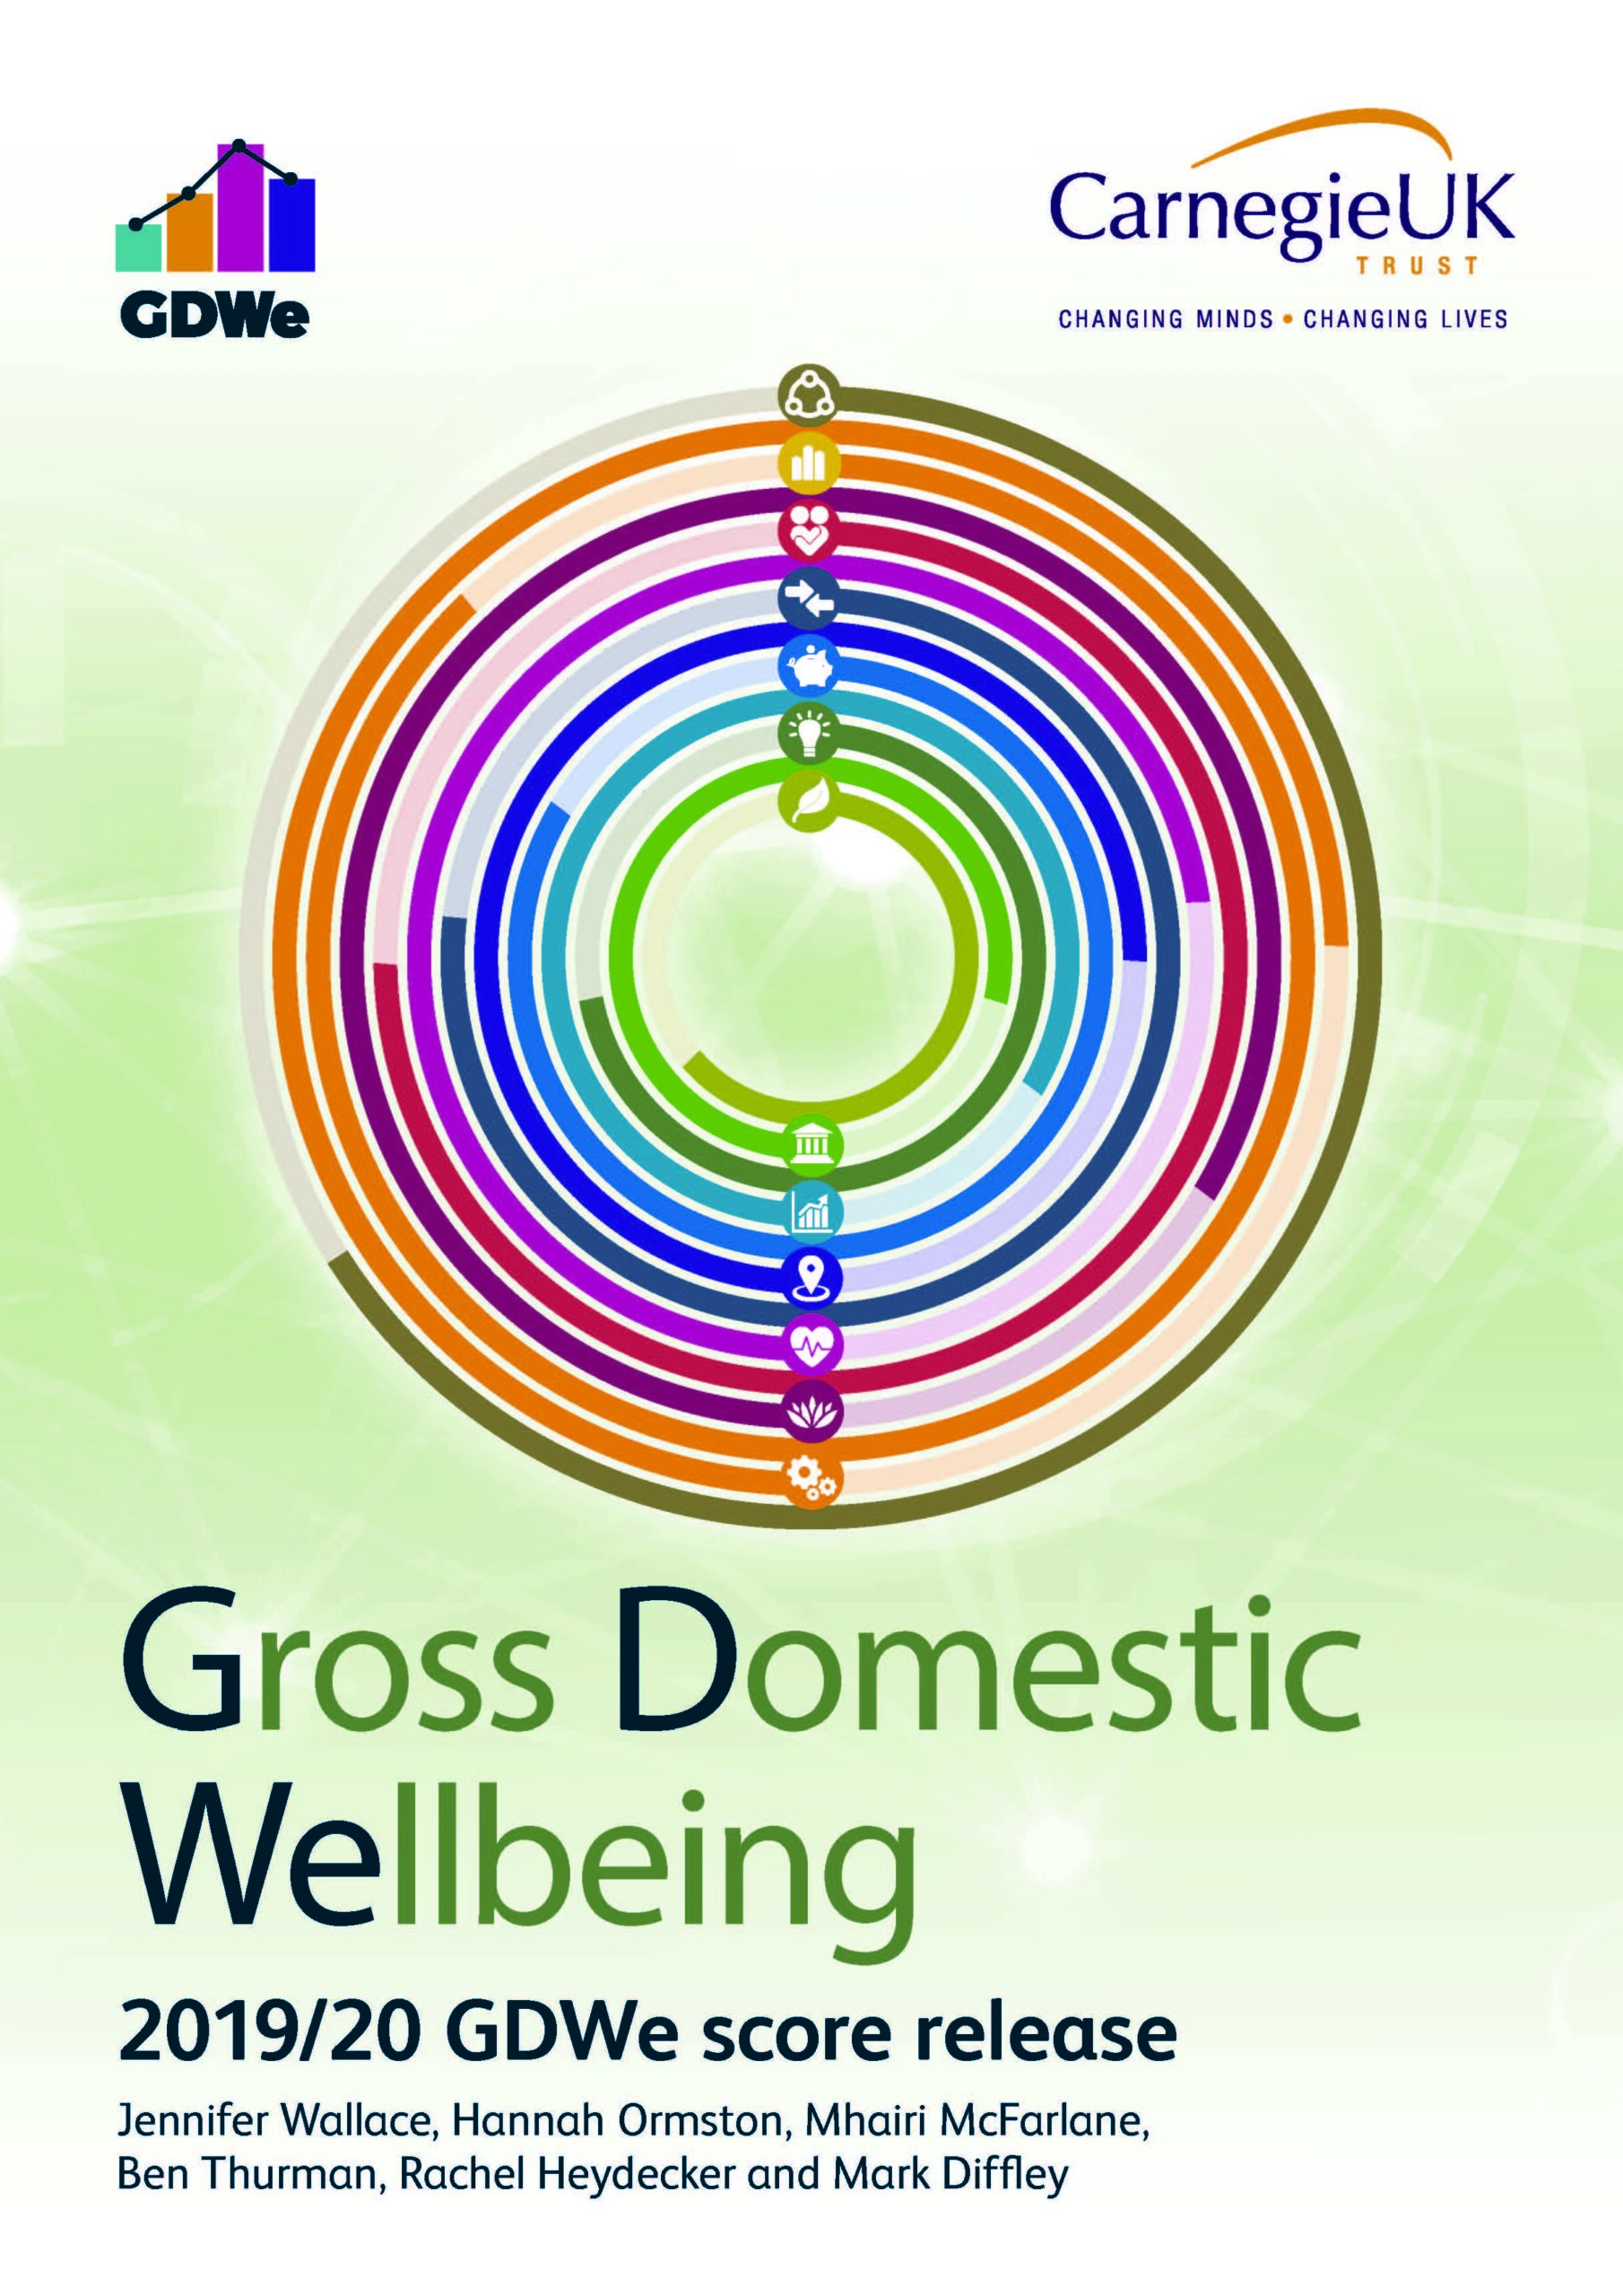 Gross Domestic Wellbeing (GDWe): 2019/20 release